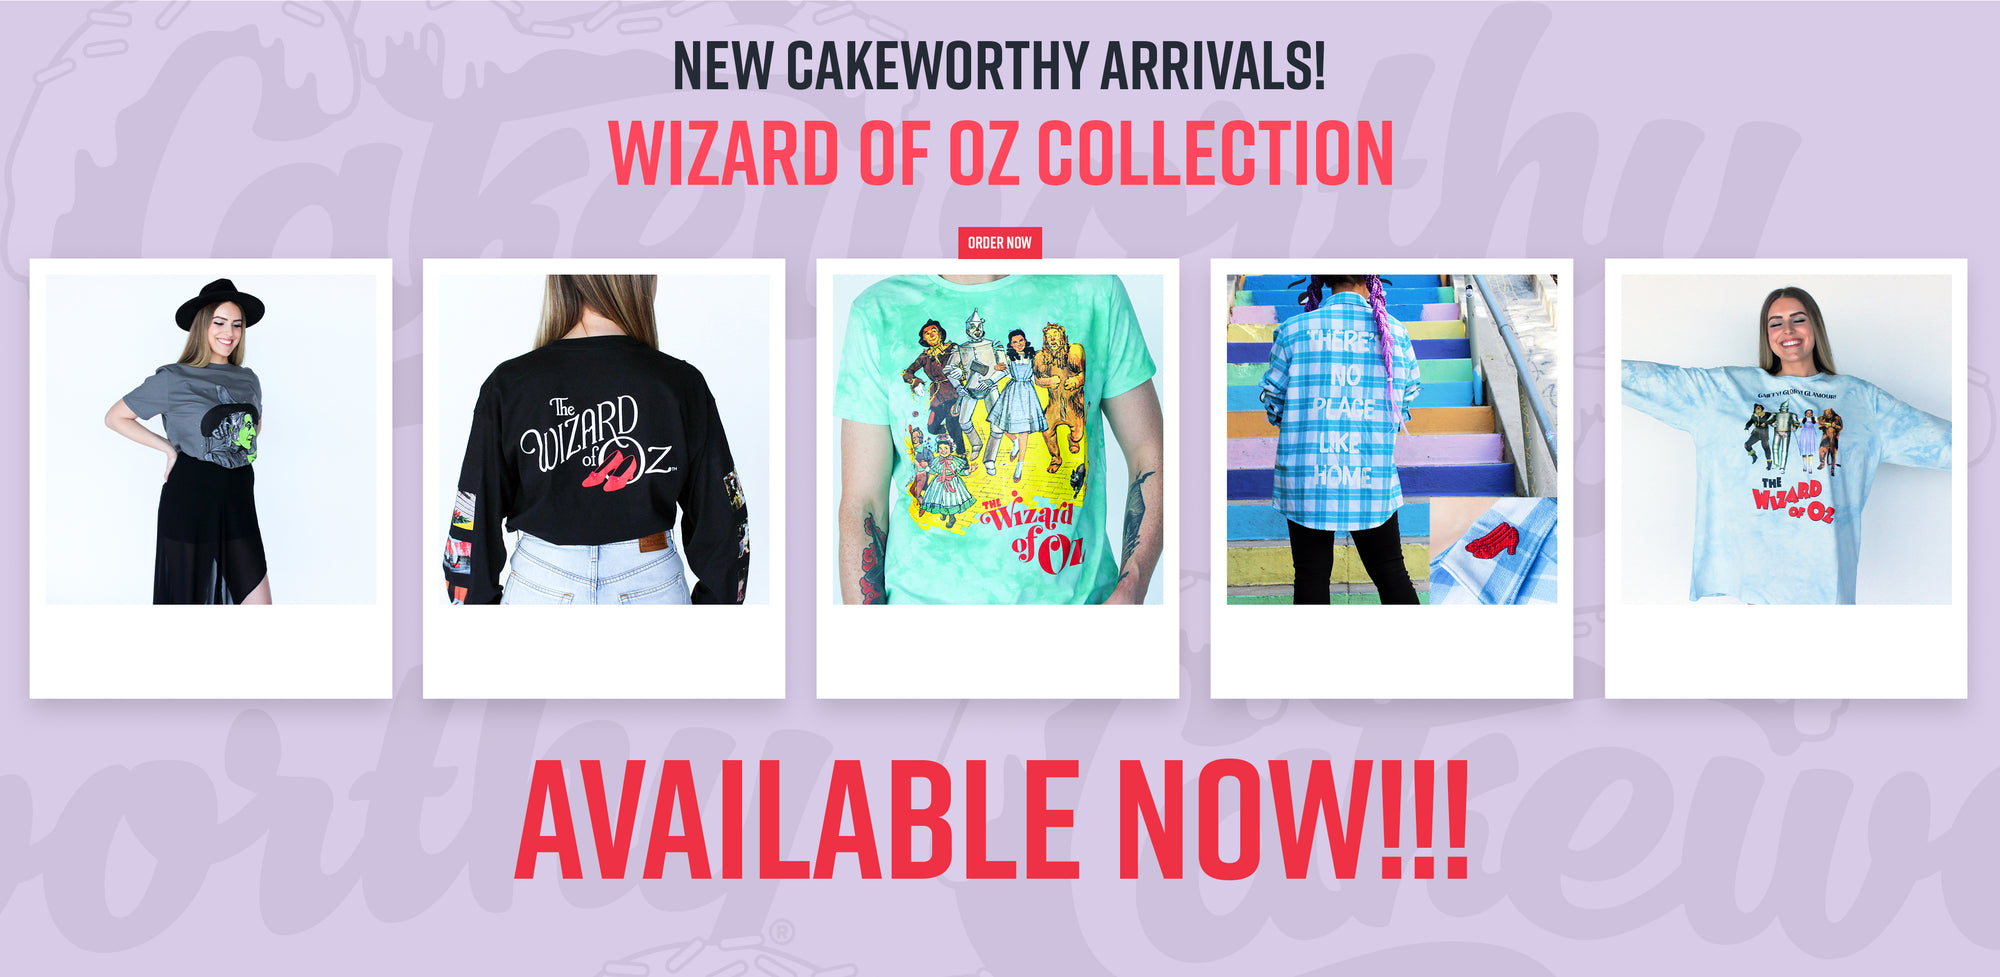 Cakeworthy's Wizard of Oz Collection is here!